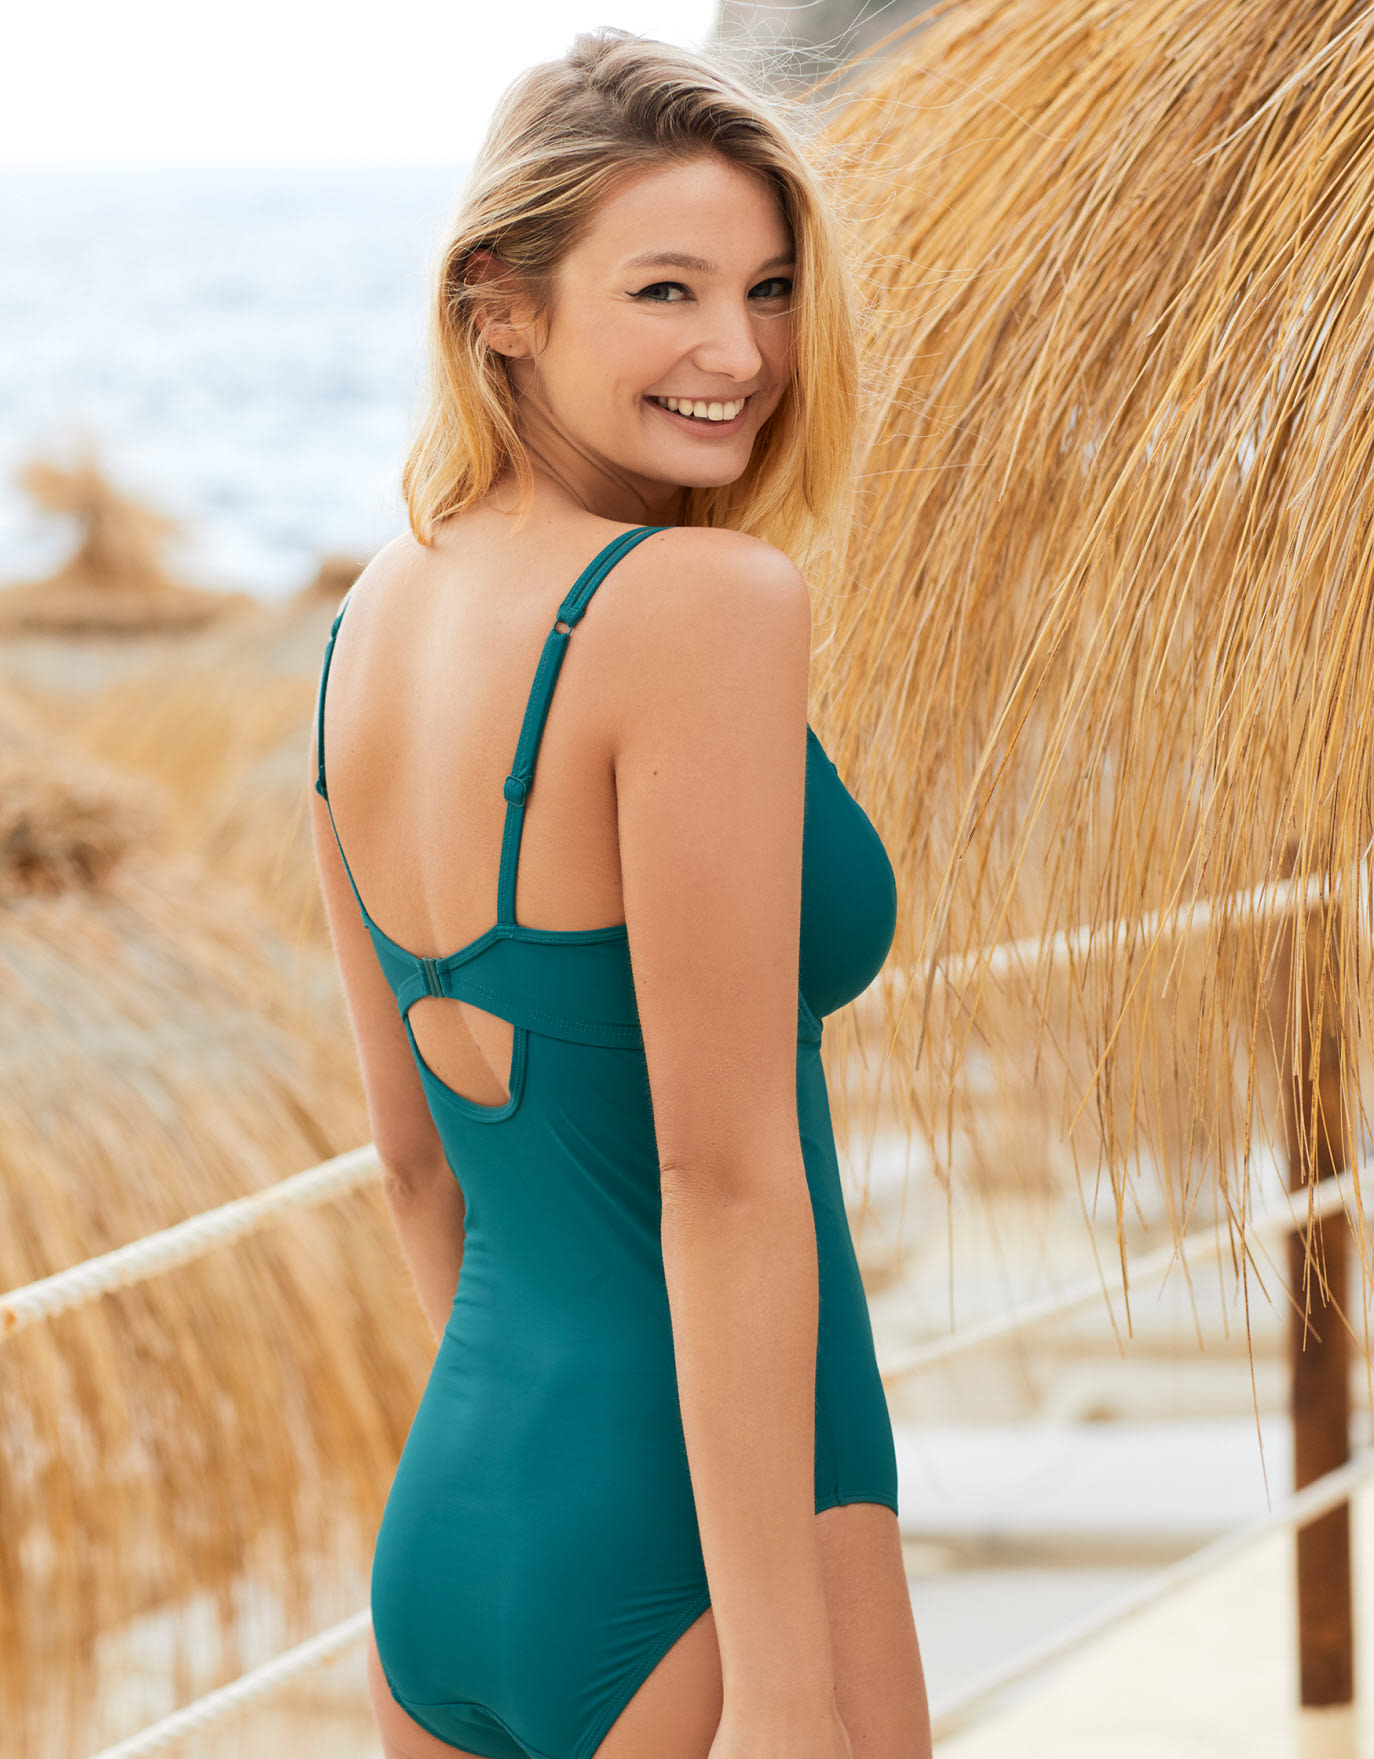 Swimsuits For Big Busts Supportive Fuller Bust Swimsuits